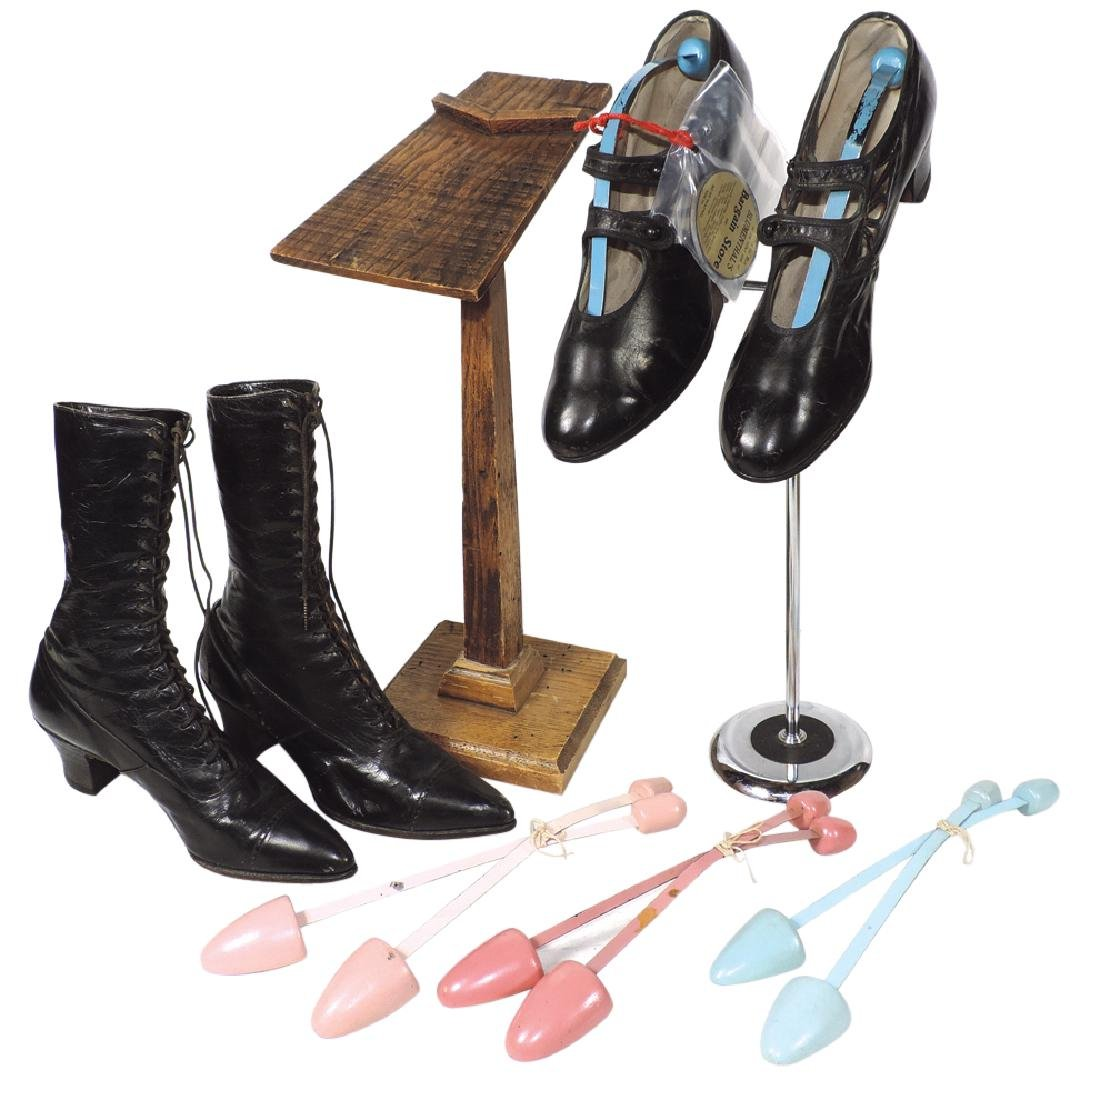 Shoe store display stands, shoes, adv mirror & shoe